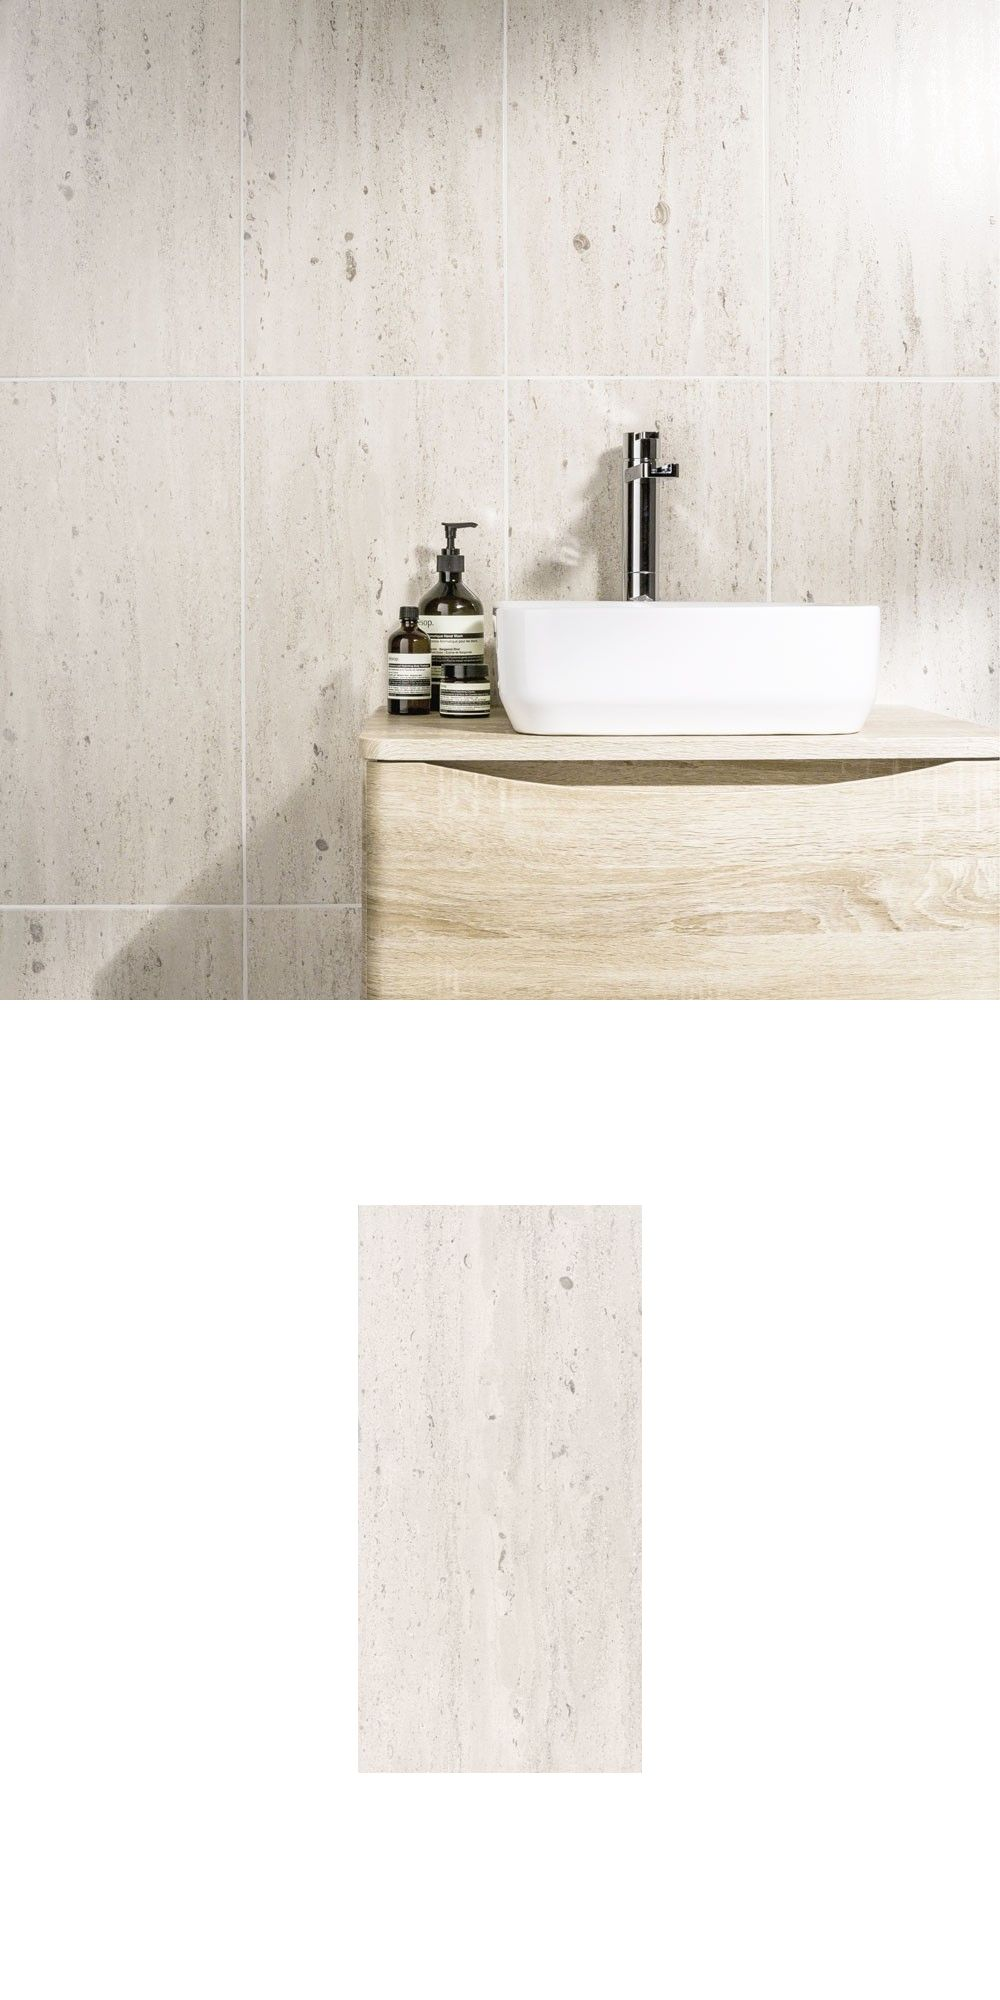 These Classic Travertine Effect Tiles emulate a travertine stone ...